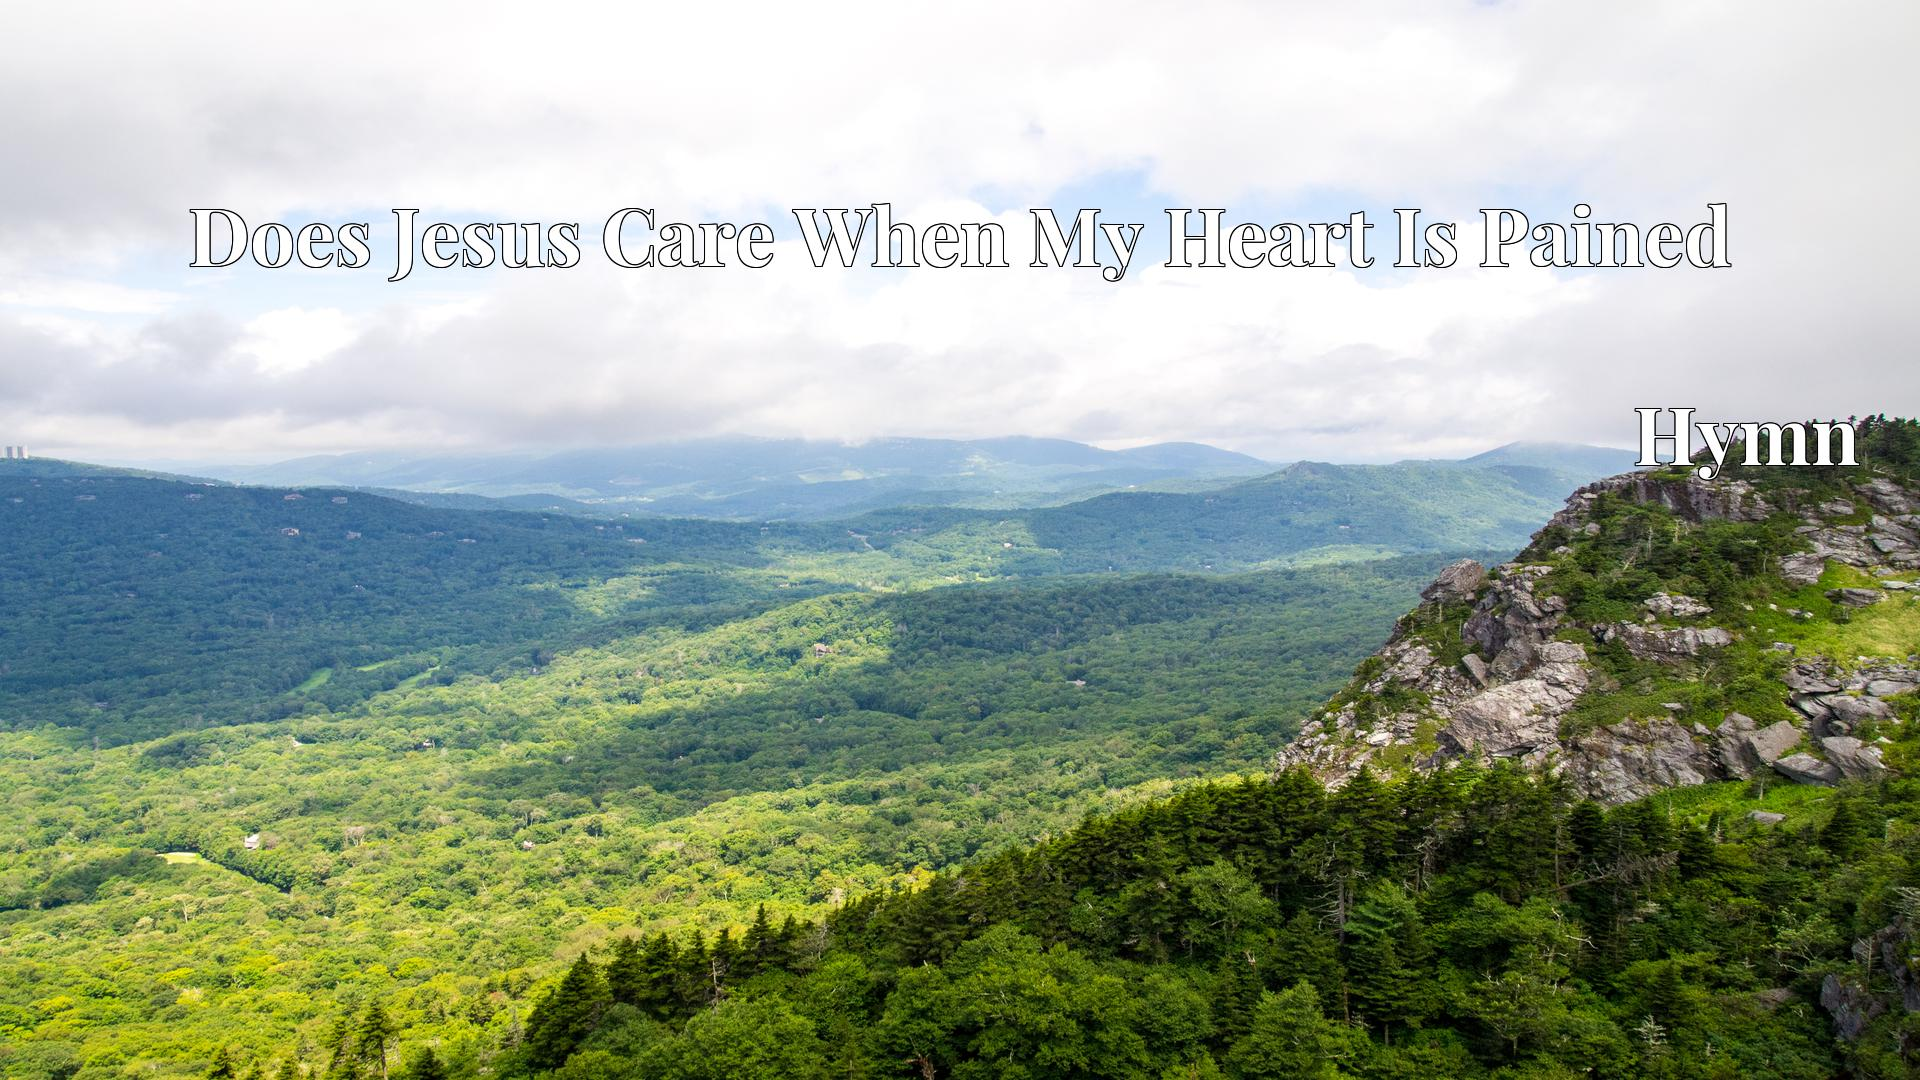 Does Jesus Care When My Heart Is Pained - Hymn